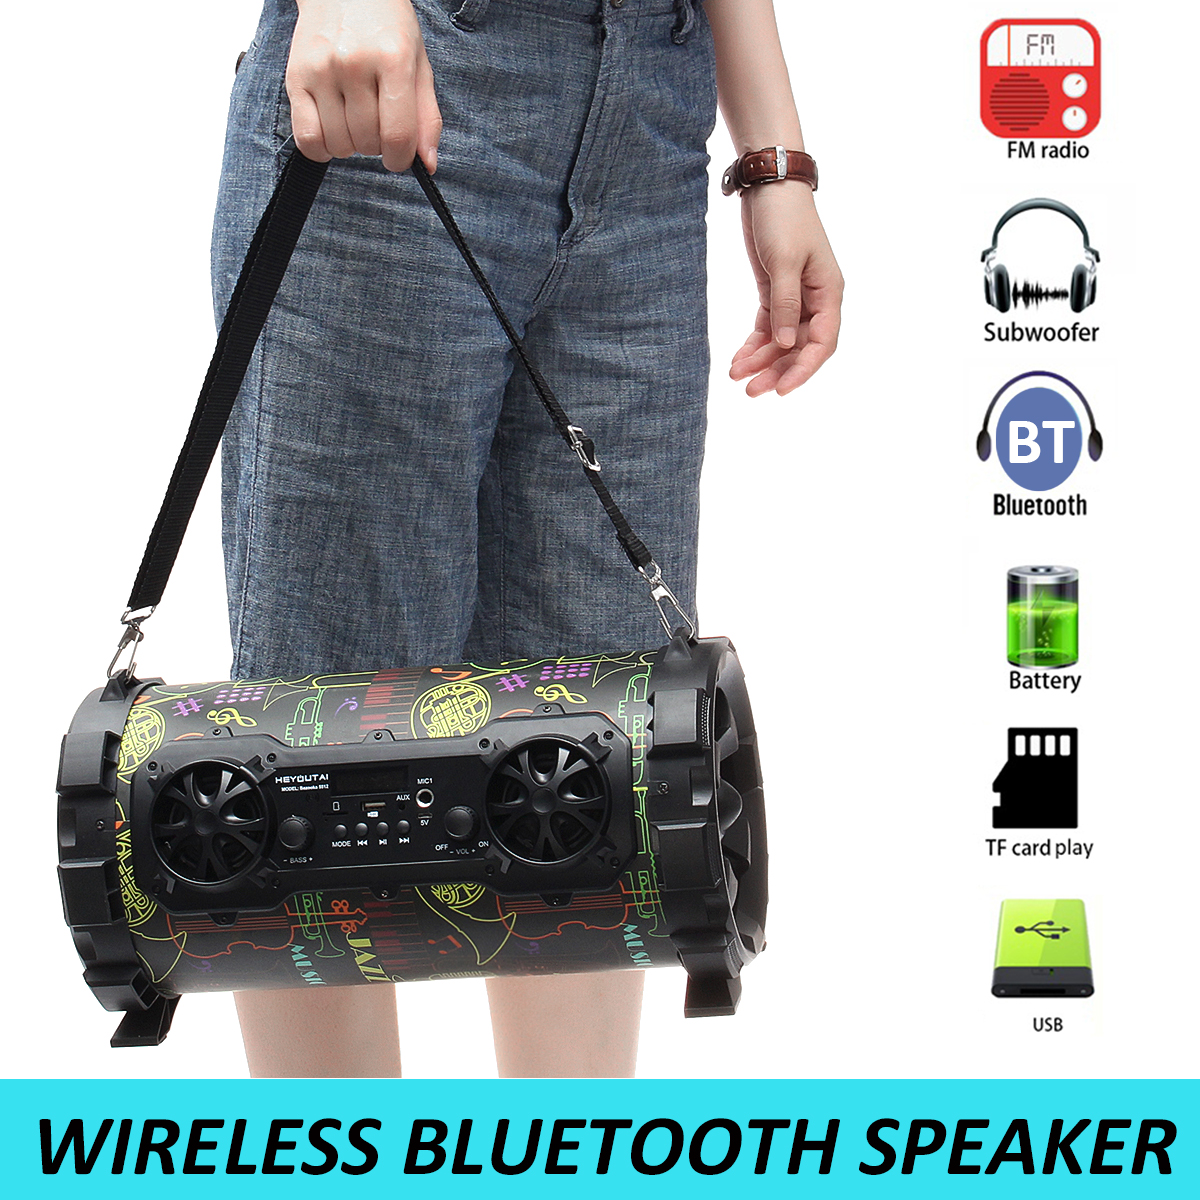 Portable Outdoor Speaker 25W Wireless Bluetooth V4.1 Speaker Loudspeaker Sound System AUX/USB/TF Card/Radio FM Player Music jy 3 outdoor wireless bluetooth speaker loudspeaker music speaker